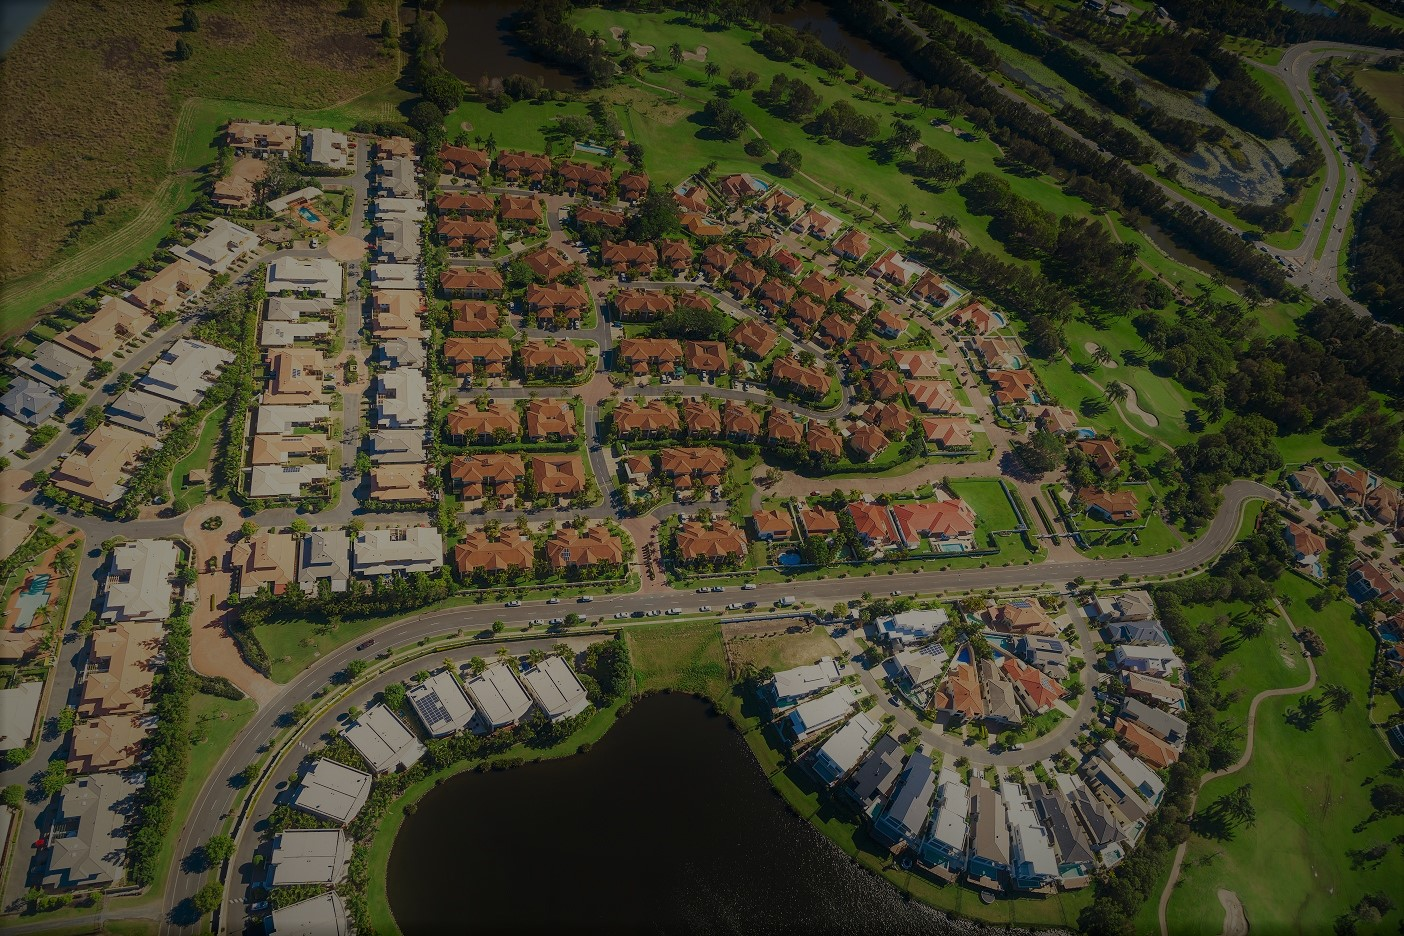 Already have a property on the Gold Coast in mind? Want a second opinion? - Get an independent Property Assessment to help you make an informed decision